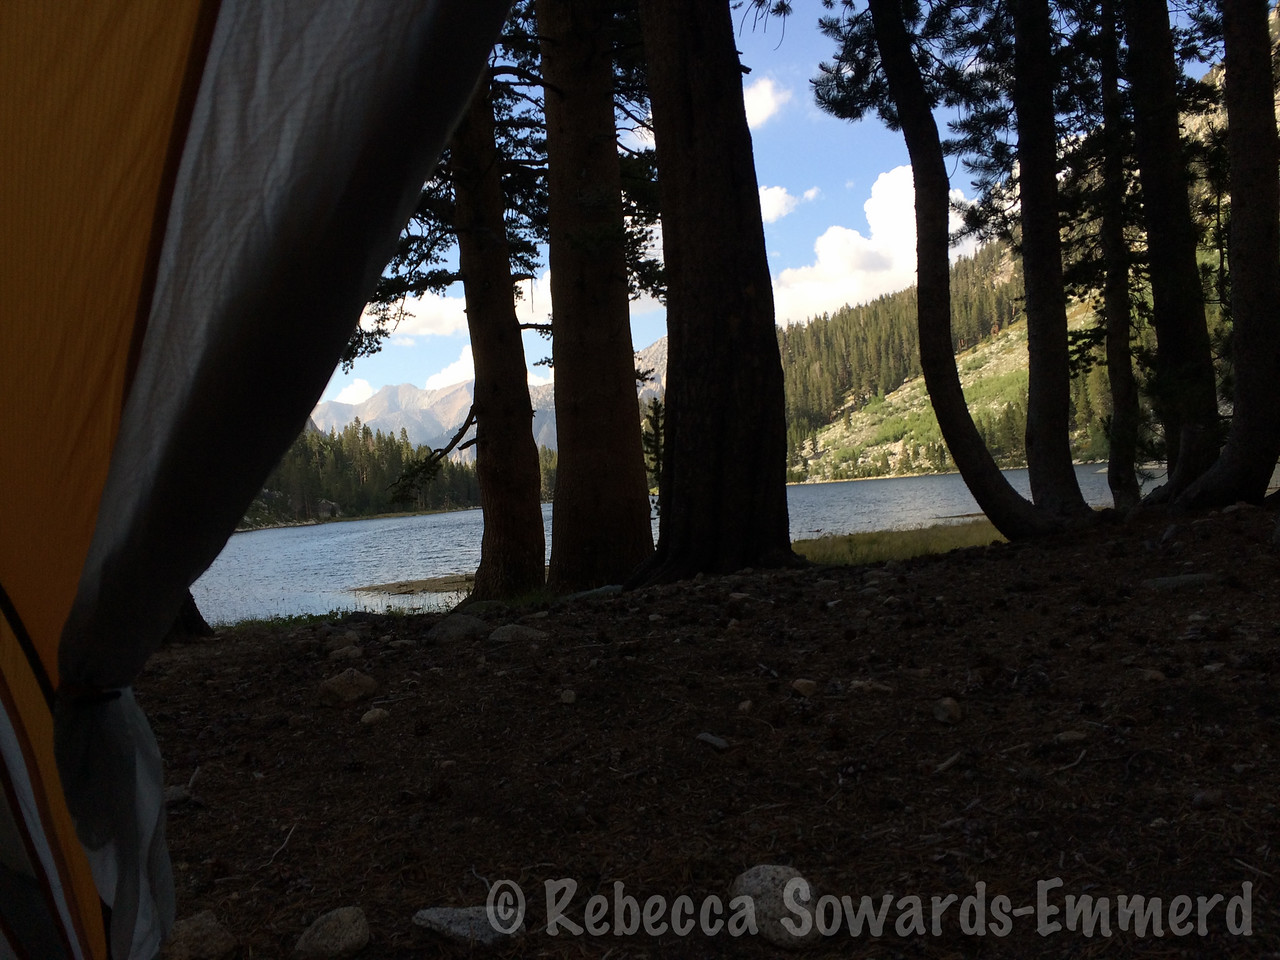 View from my tent - night 2 and 3